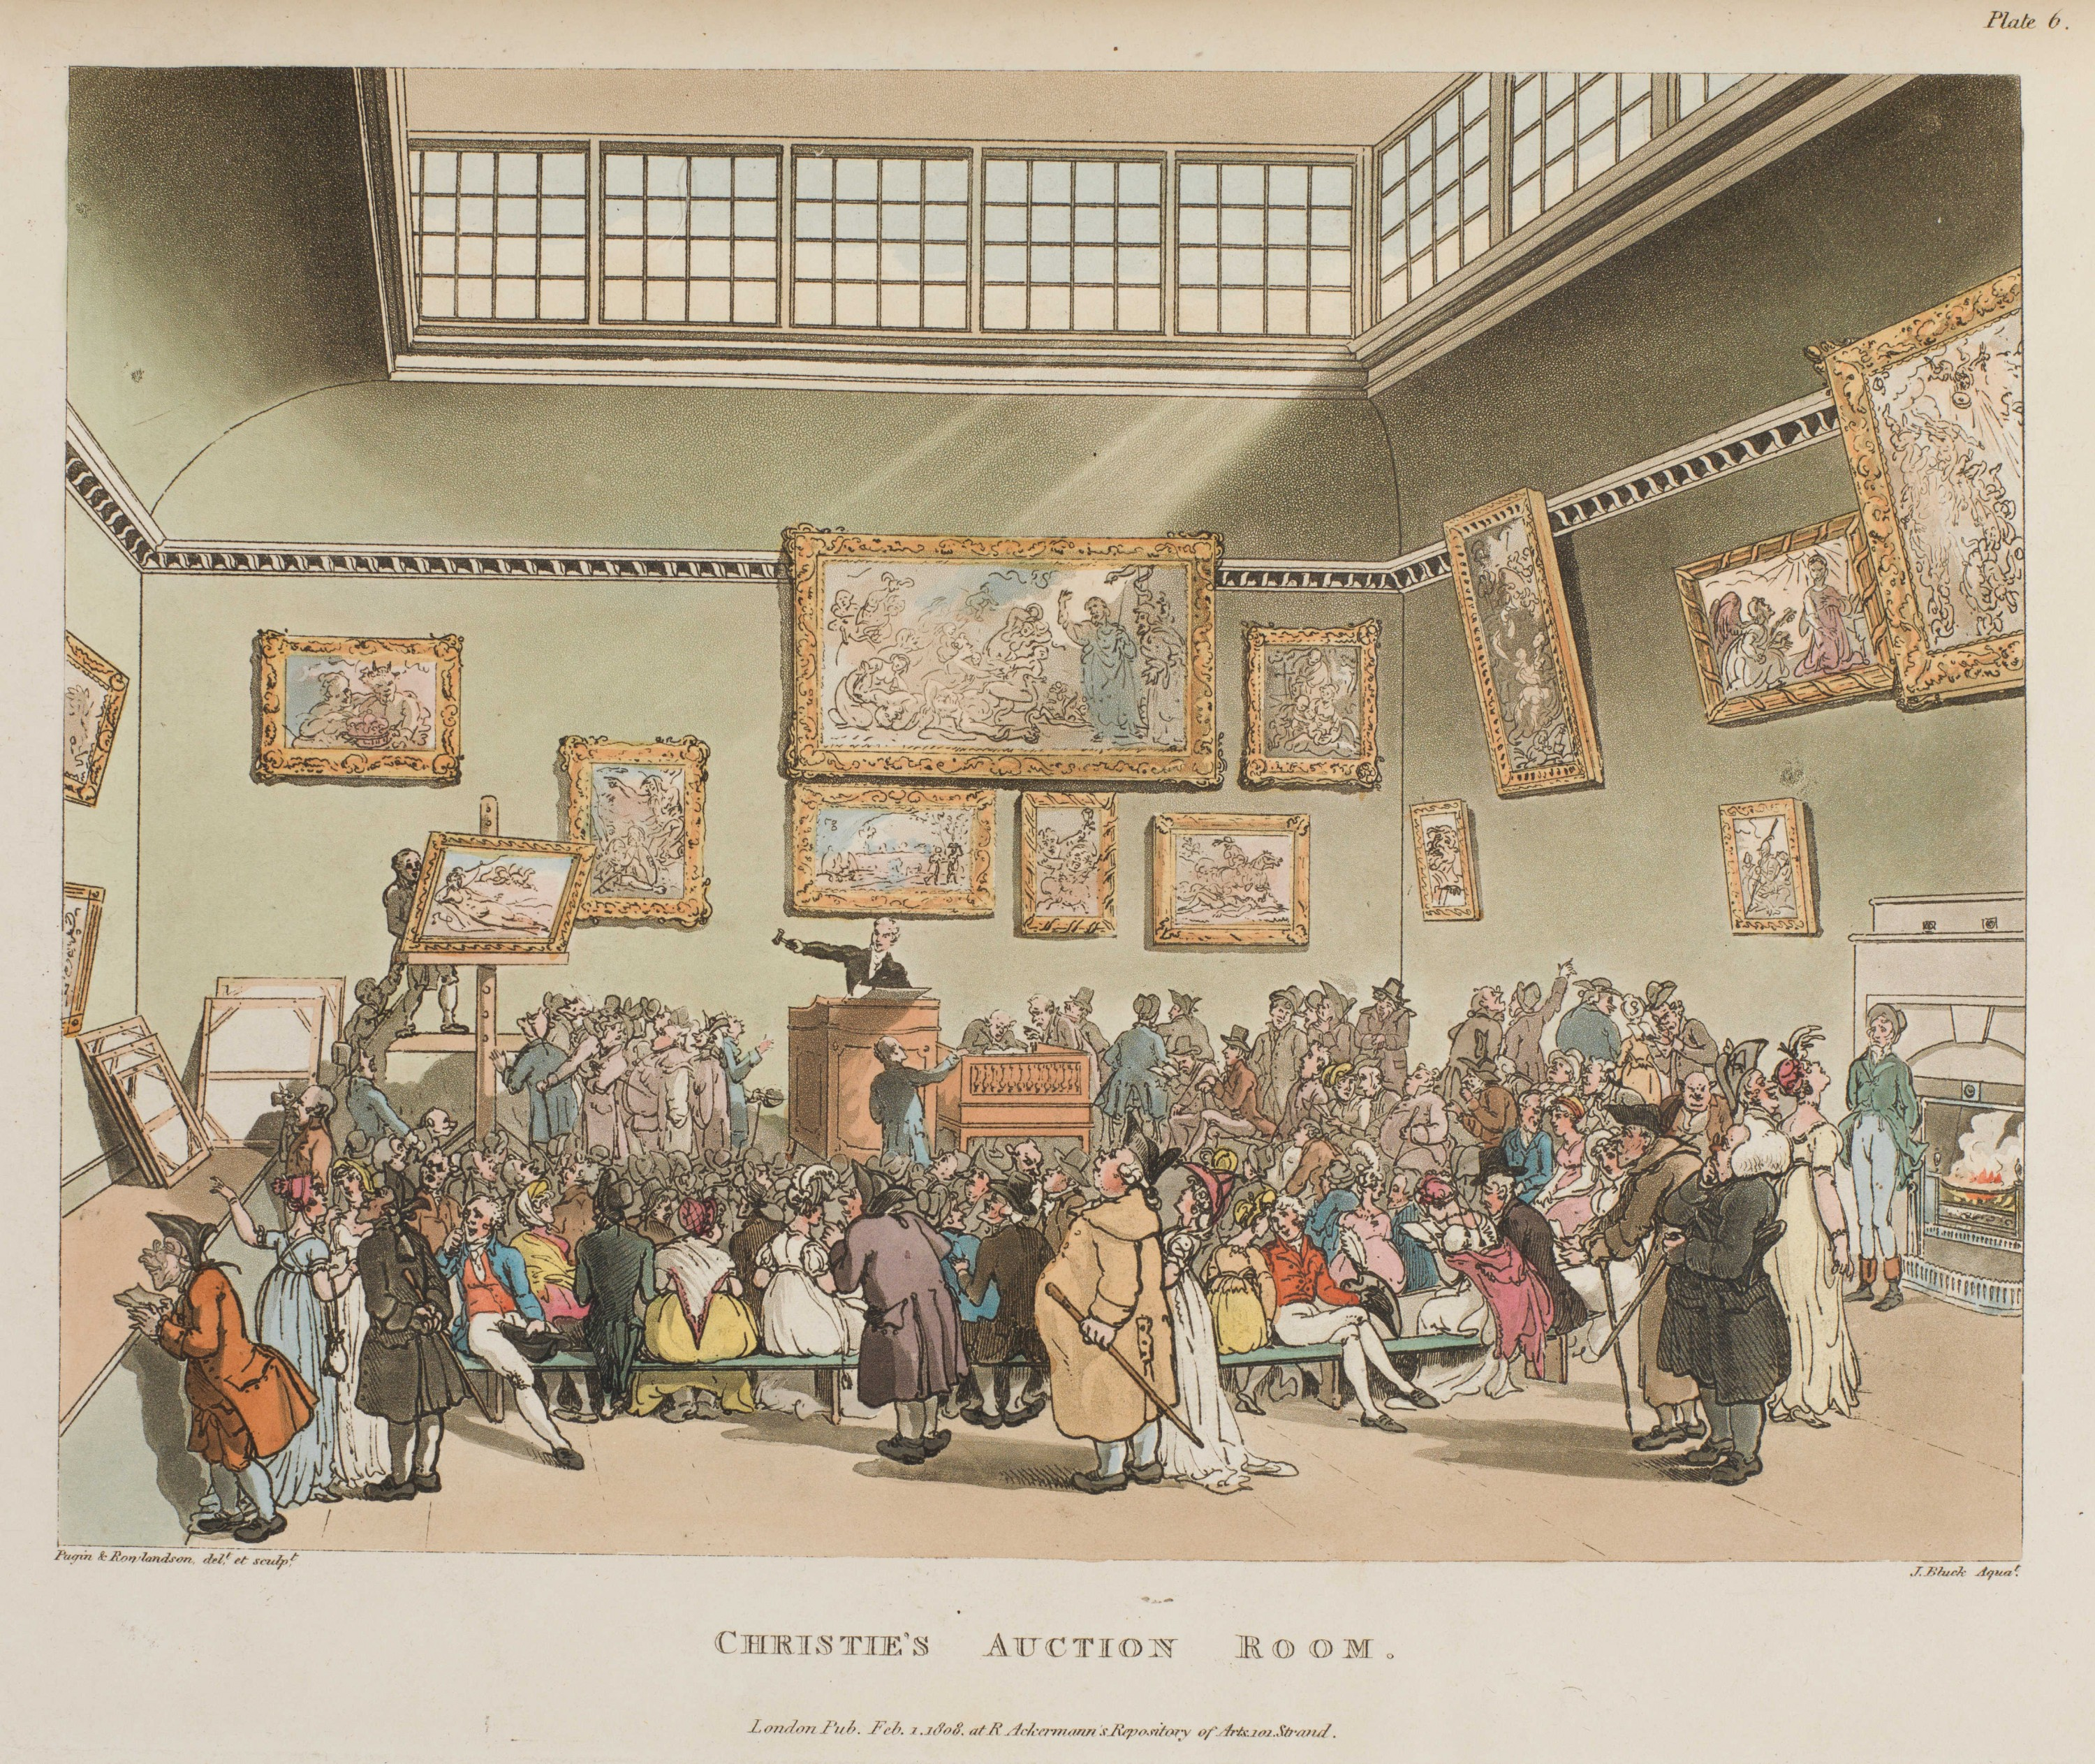 006 - Christies Auction Room